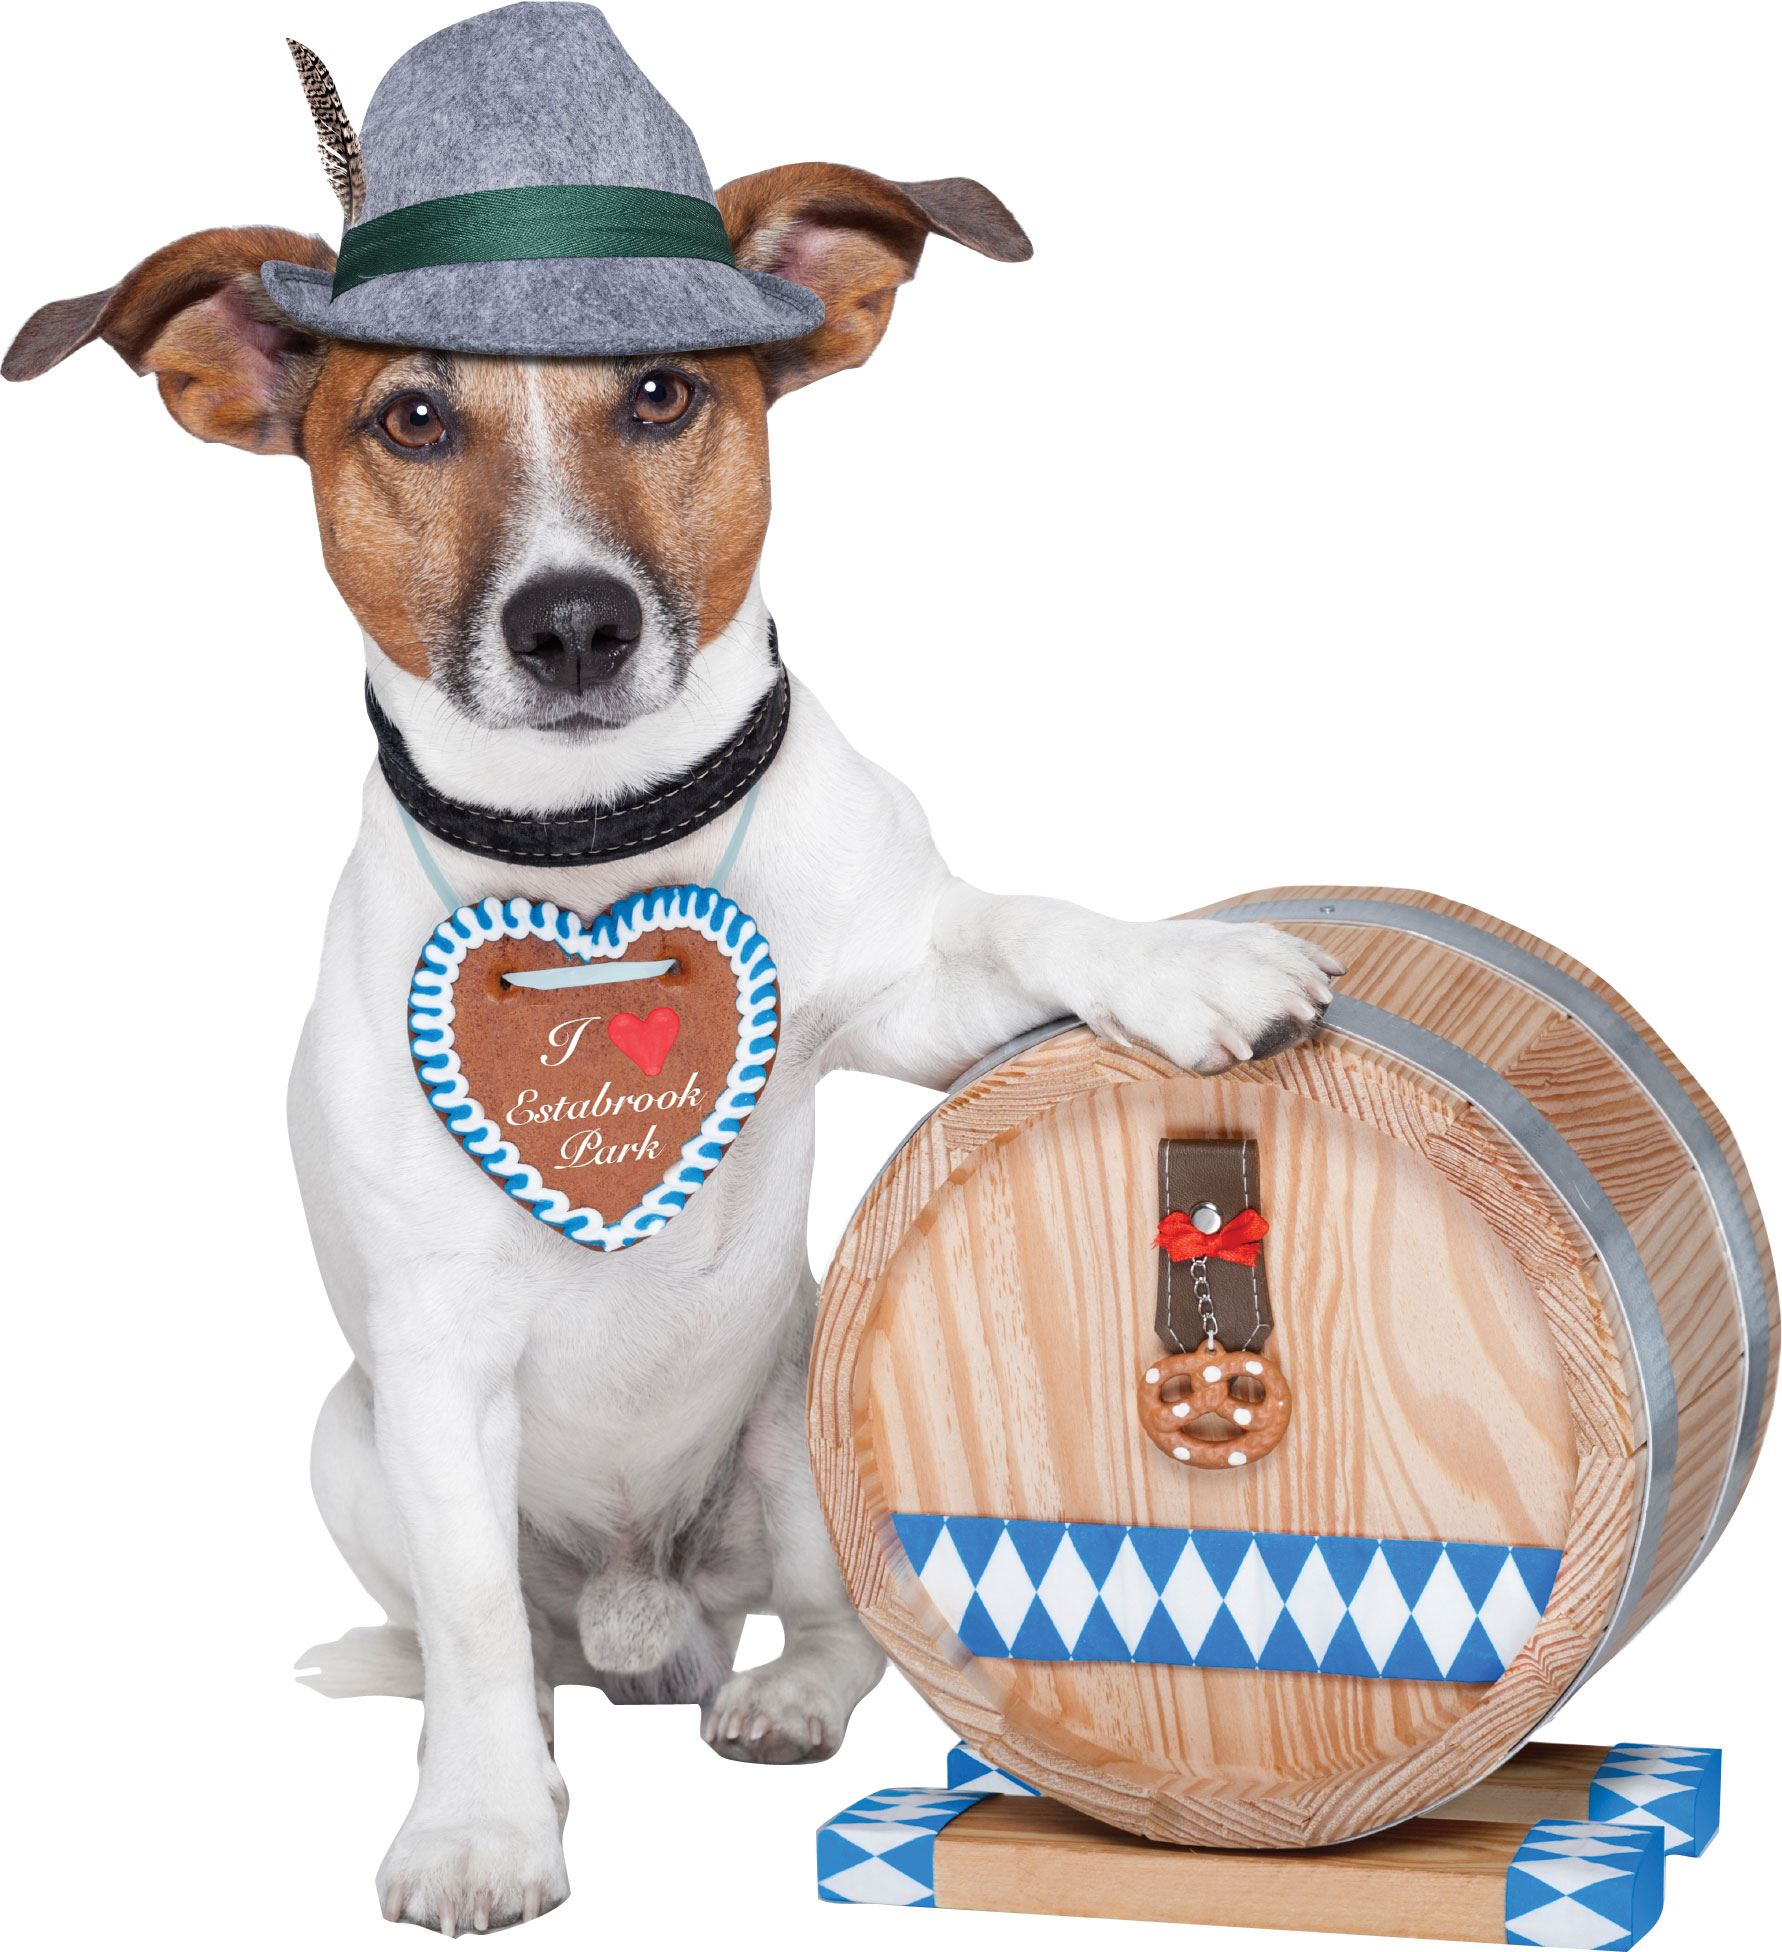 octoberfest-dog4web